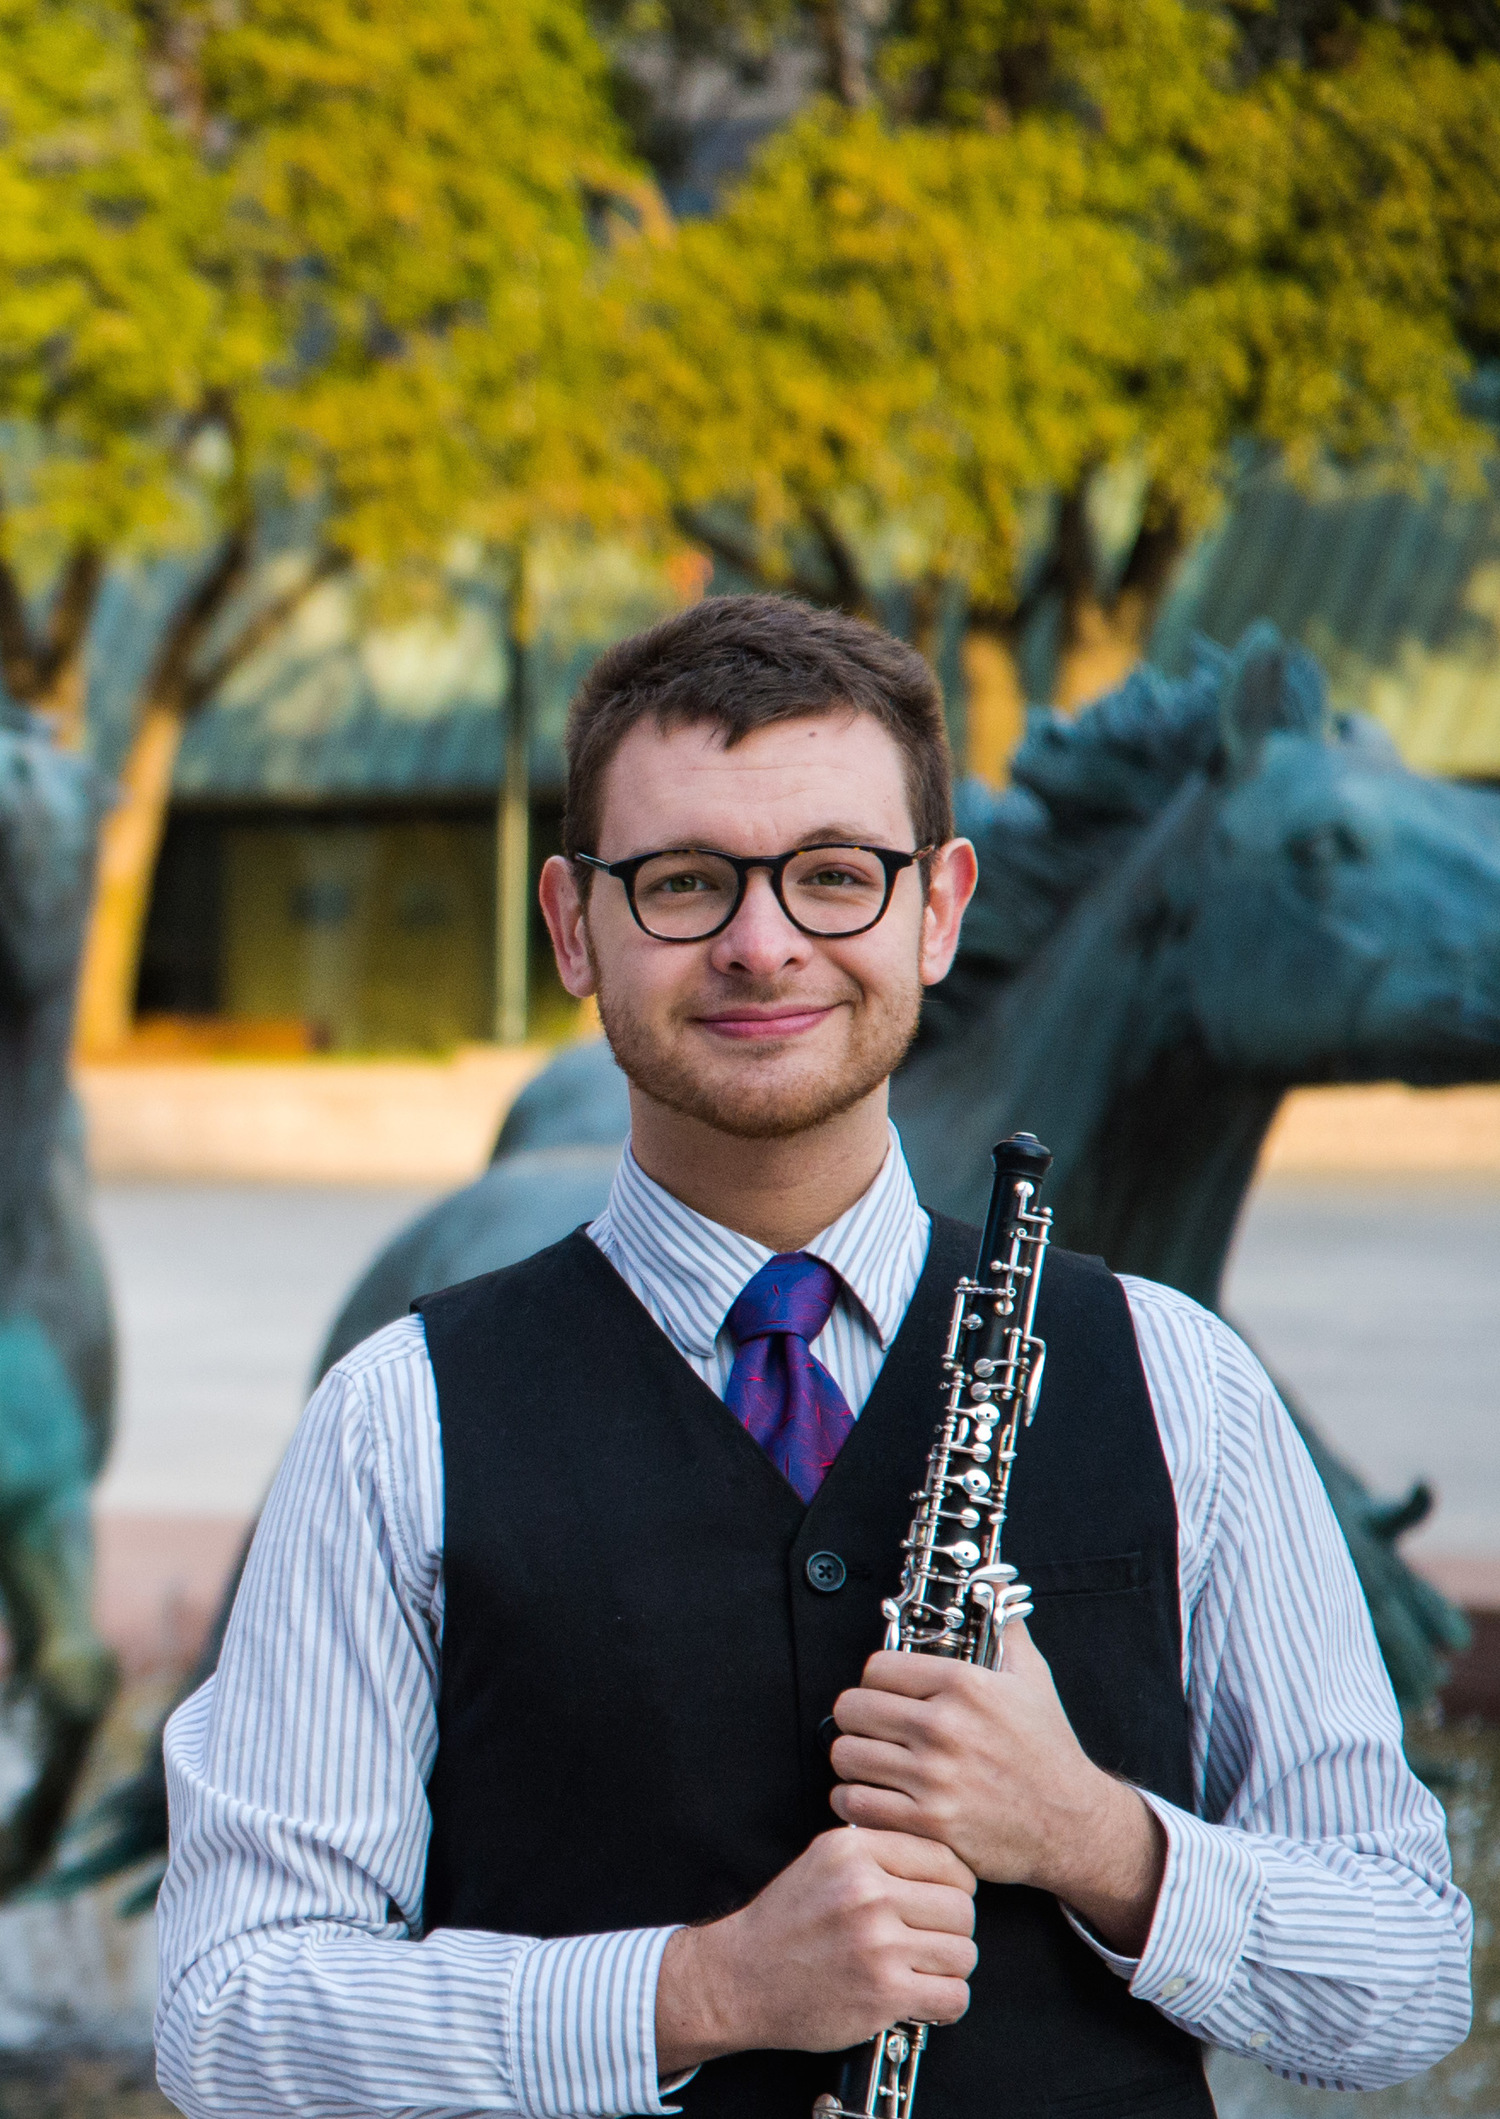 Jonathan Thompson, a graduate student and Oboe Teaching Fellow at UNT, won the 2017-2018 Presser Graduate Music Award.